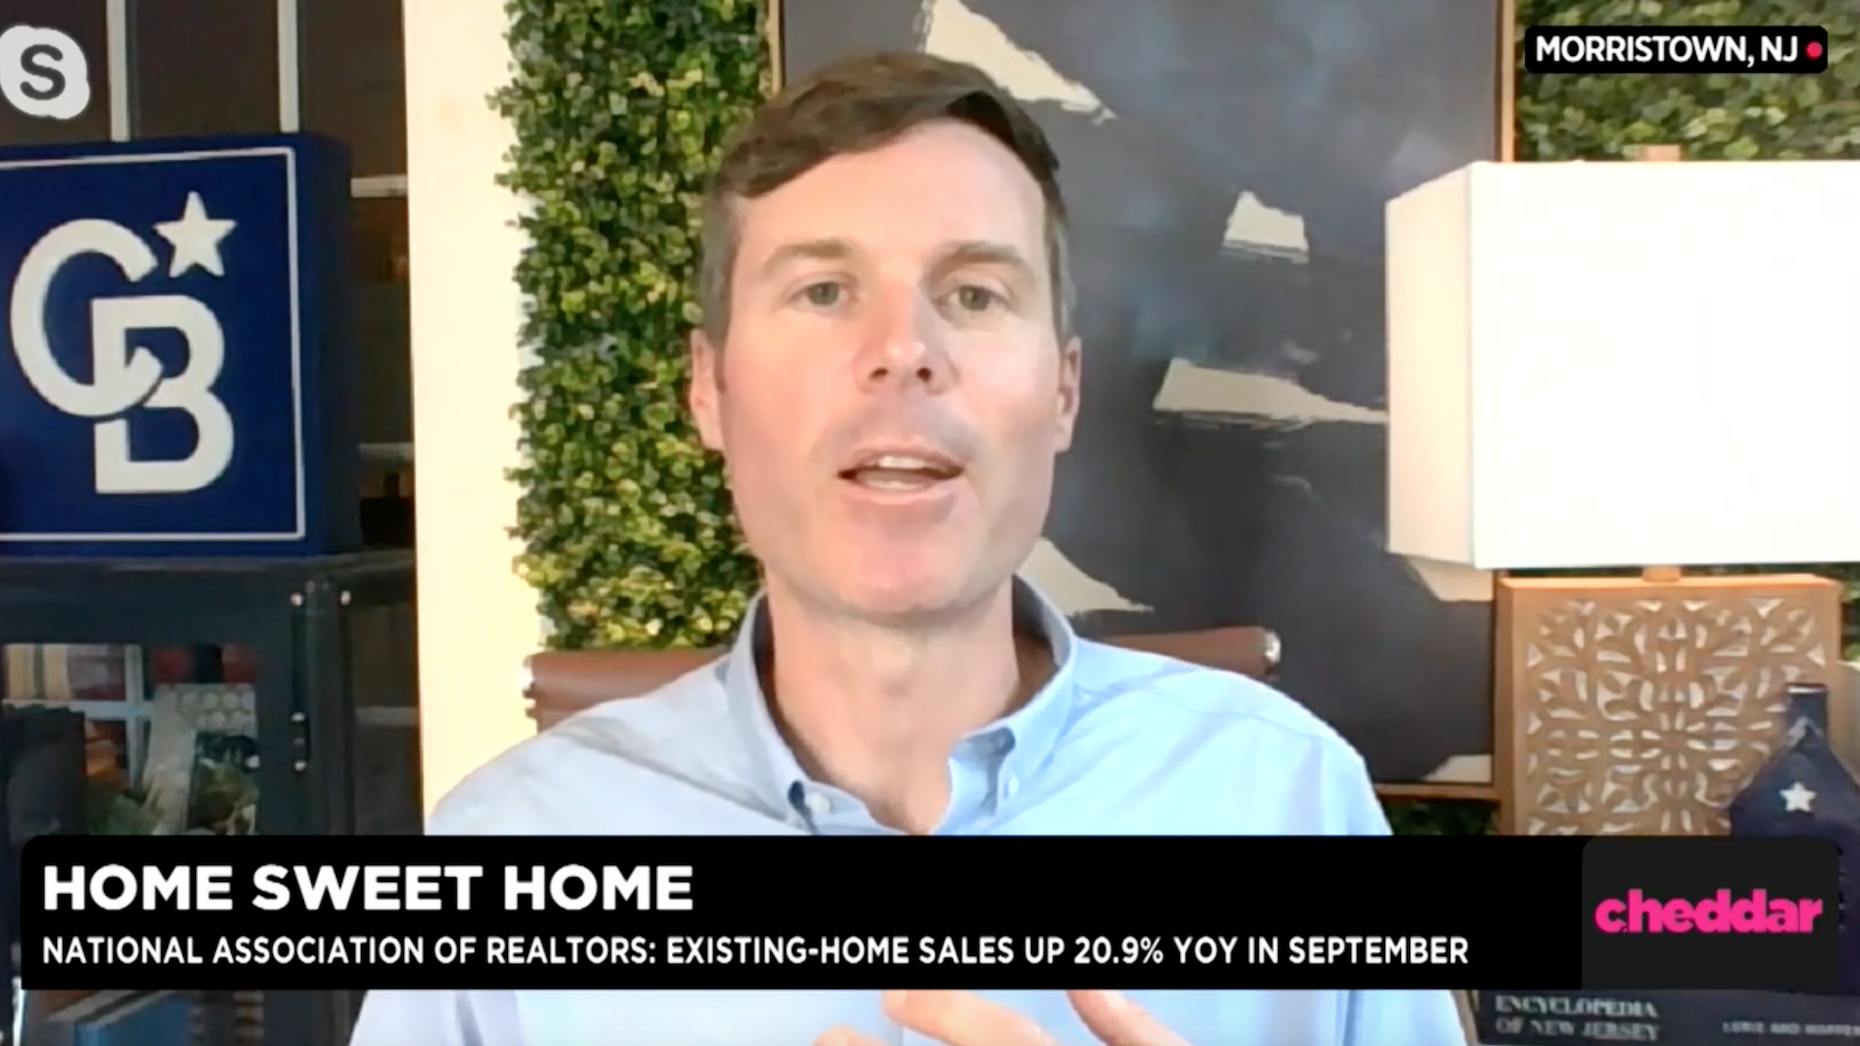 Coldwell Banker CEO: Family moves fueling 'brisk' sales nationwide